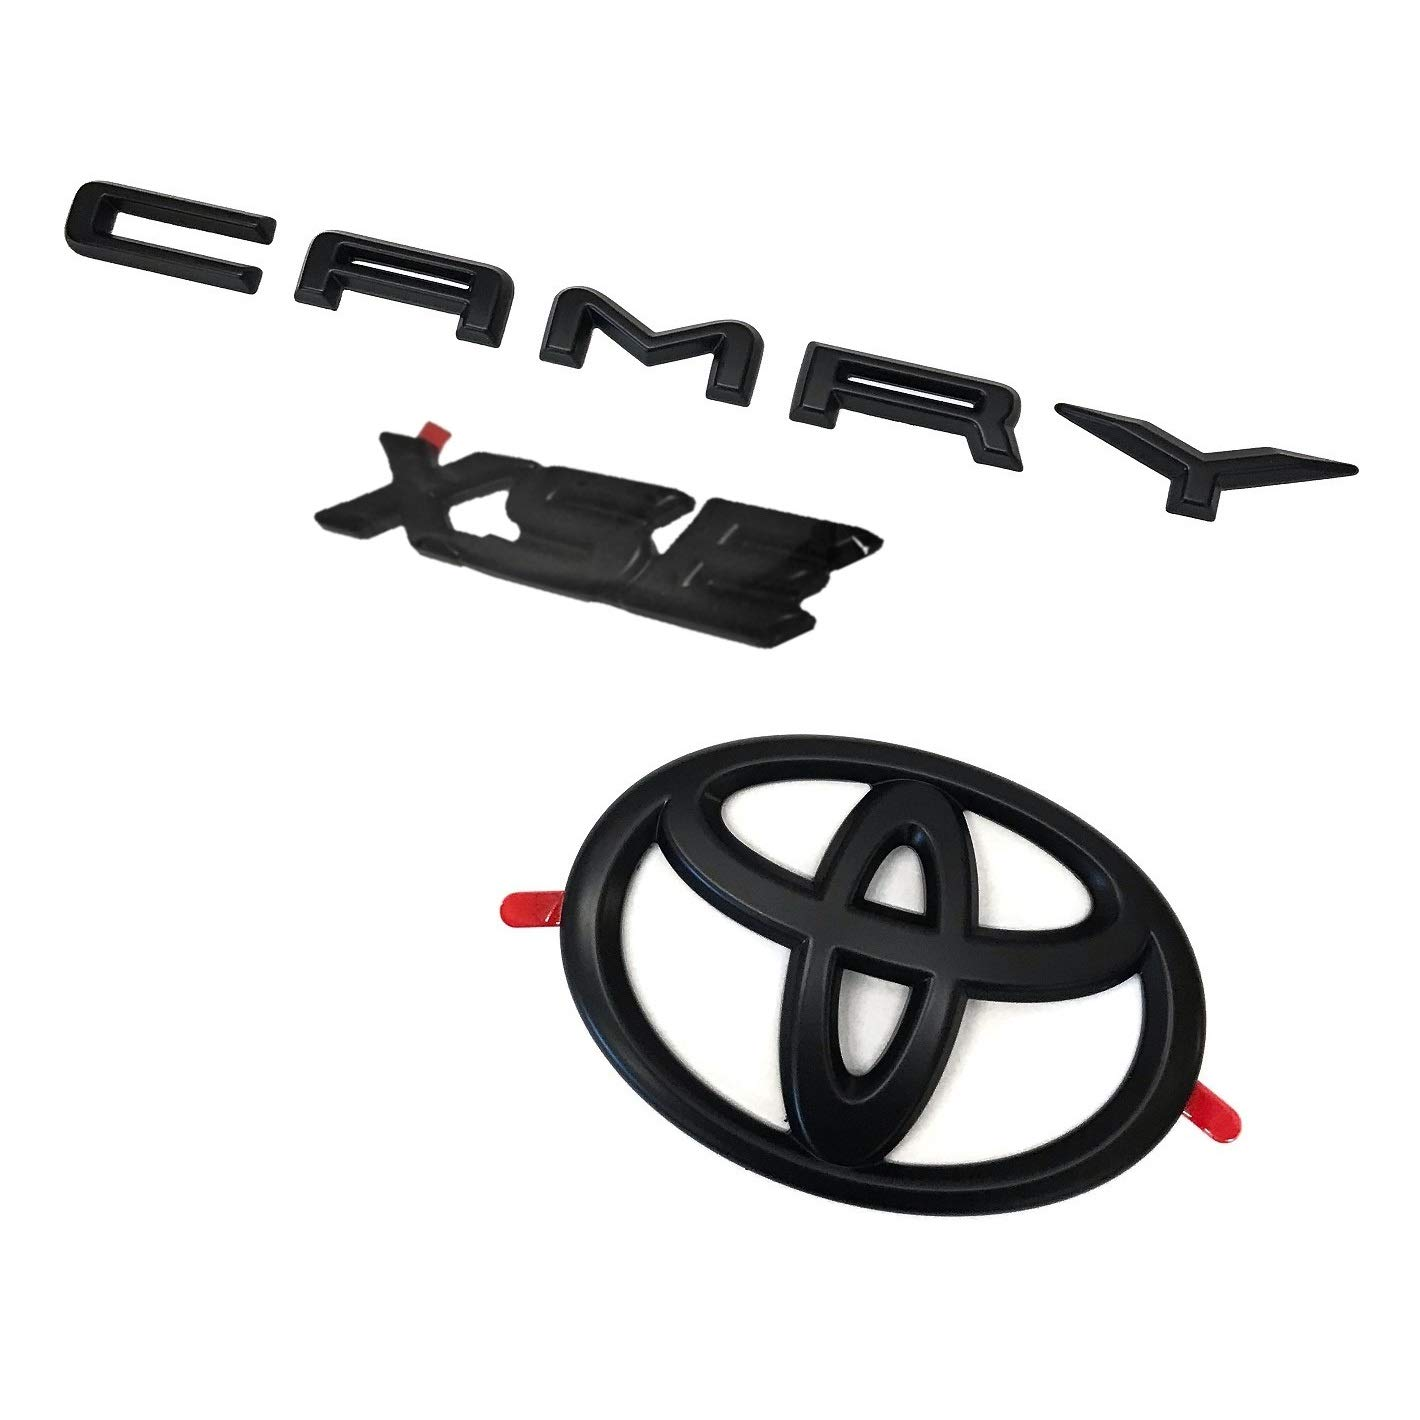 Genuine Toyota Camry XSE Blackout Emblem Overlays PT948-03190-02